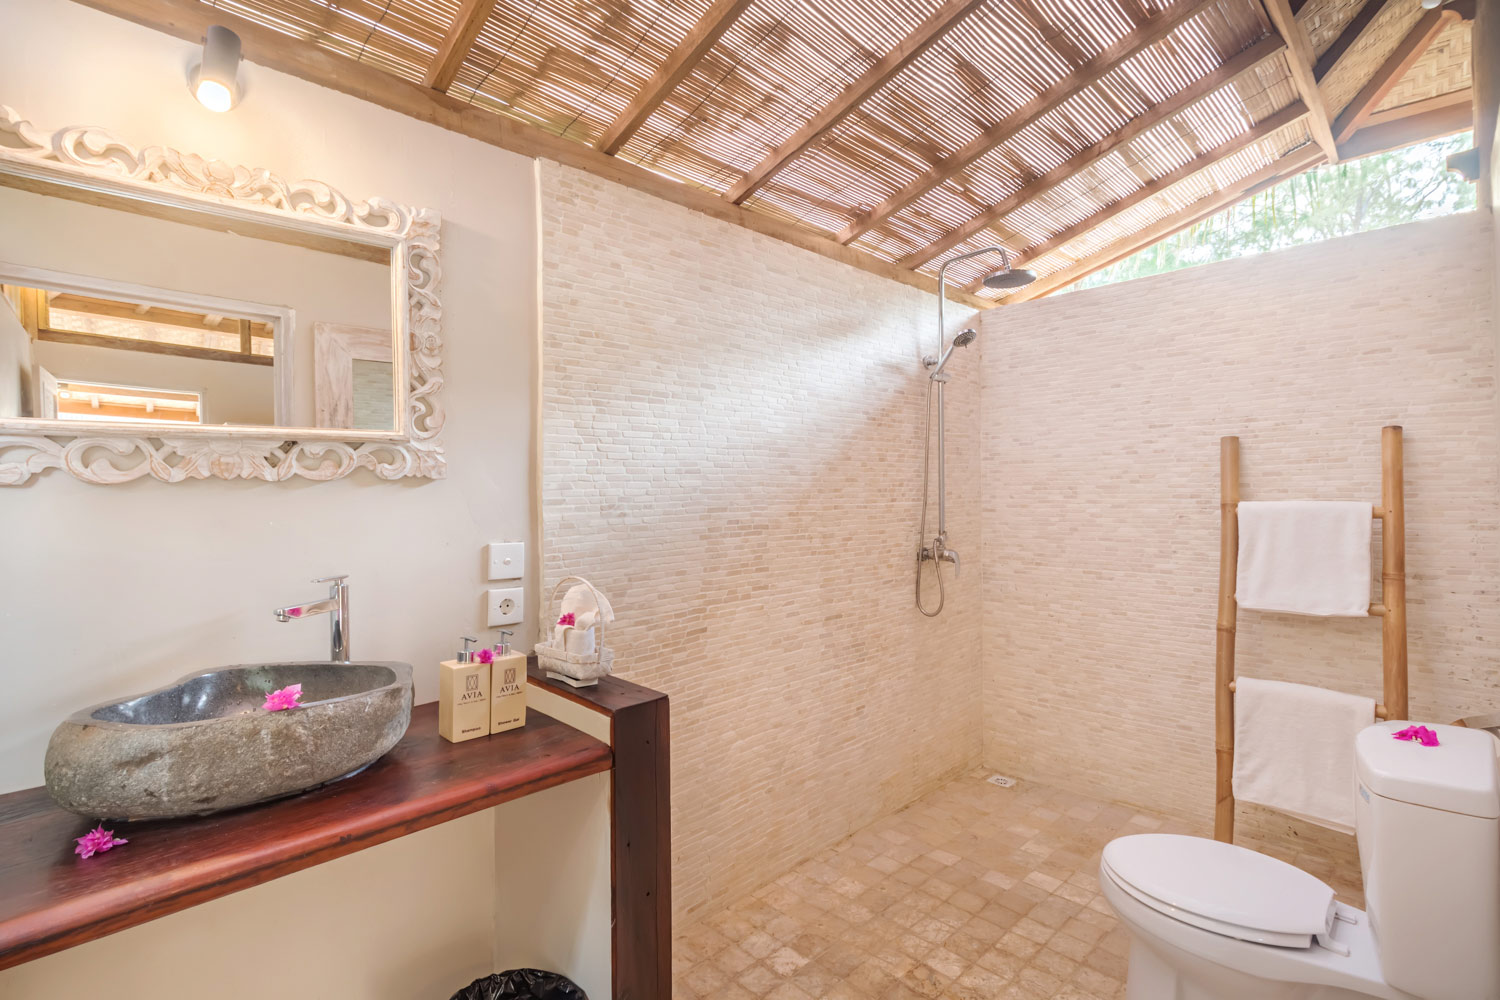 Huge bathroom - Gili Meno - Avia Villa resort